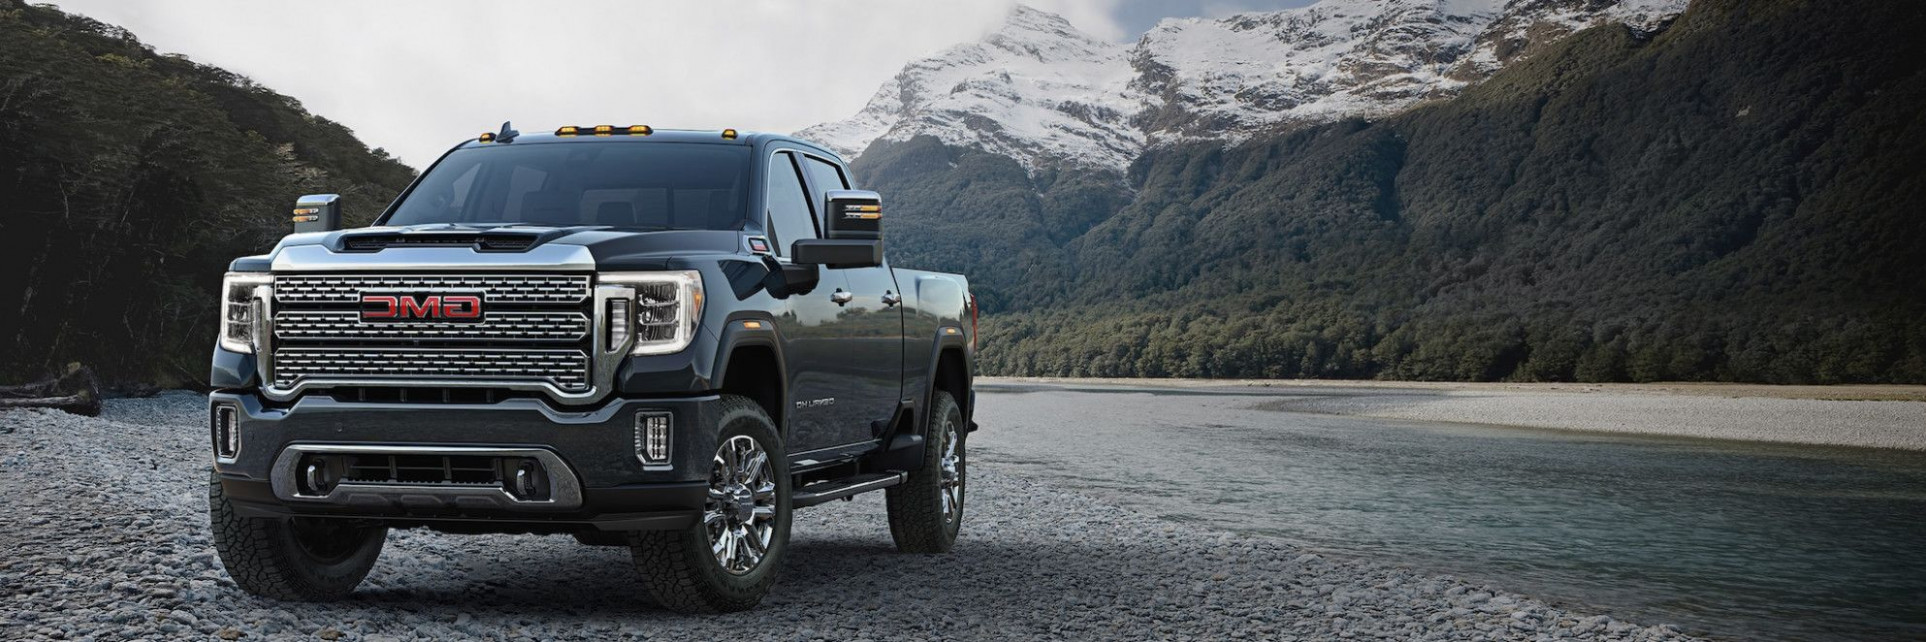 I Will Tell You The Truth About Used 11 GMC Sierra Denali In The ..